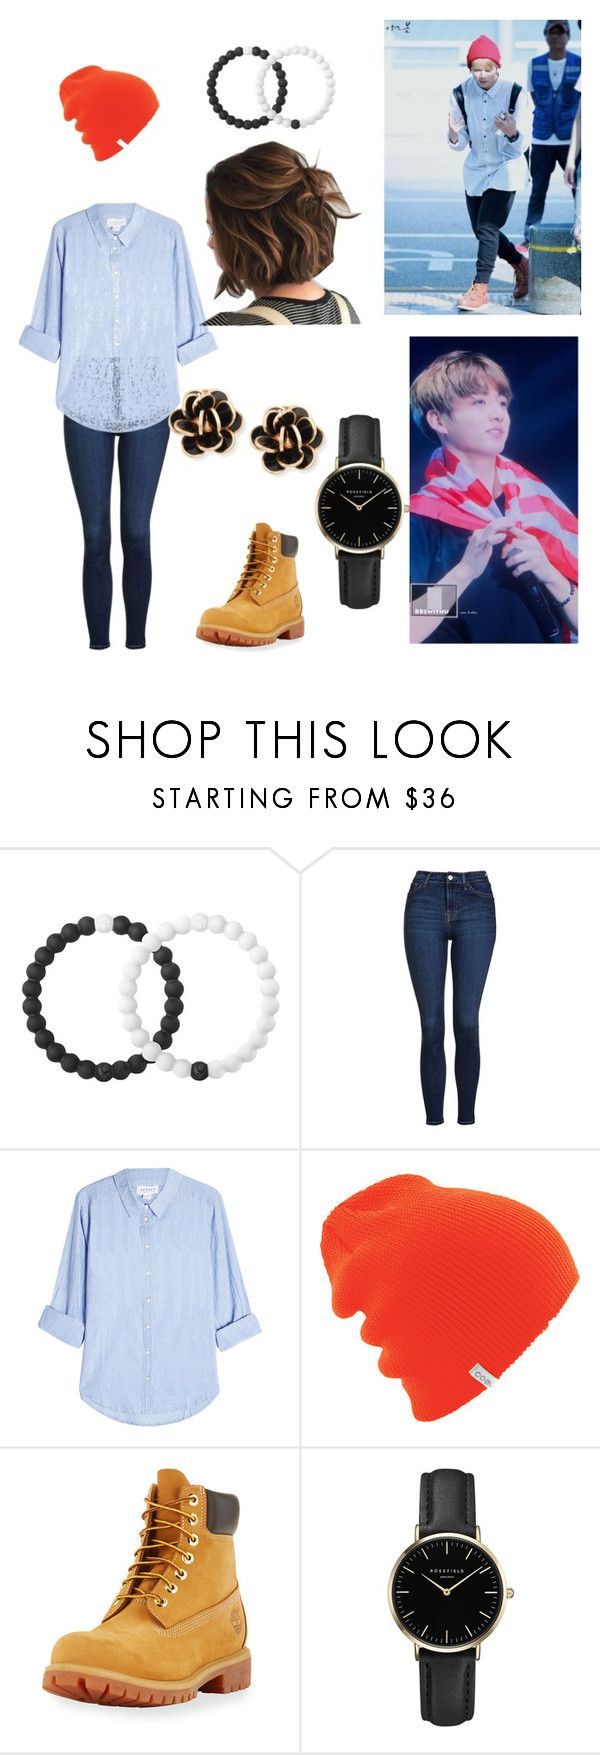 """Jungkook BTS Ropa de Pareja"" by cande-anahi on Polyvore featuring Lokai, Topshop, Velvet, Timberland, ROSEFIELD and Chantecler"